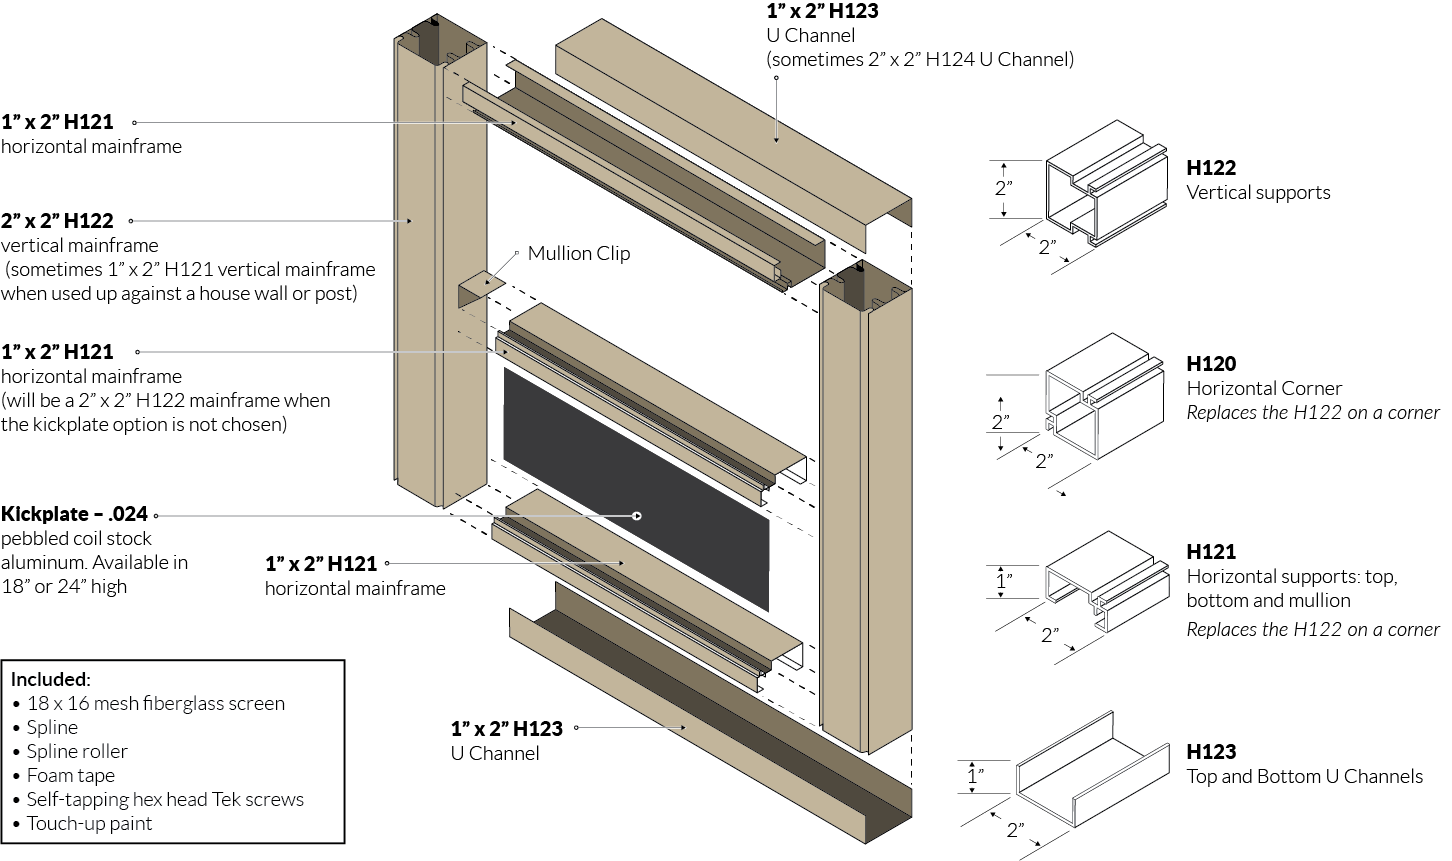 Exploded view of the screen walls installation